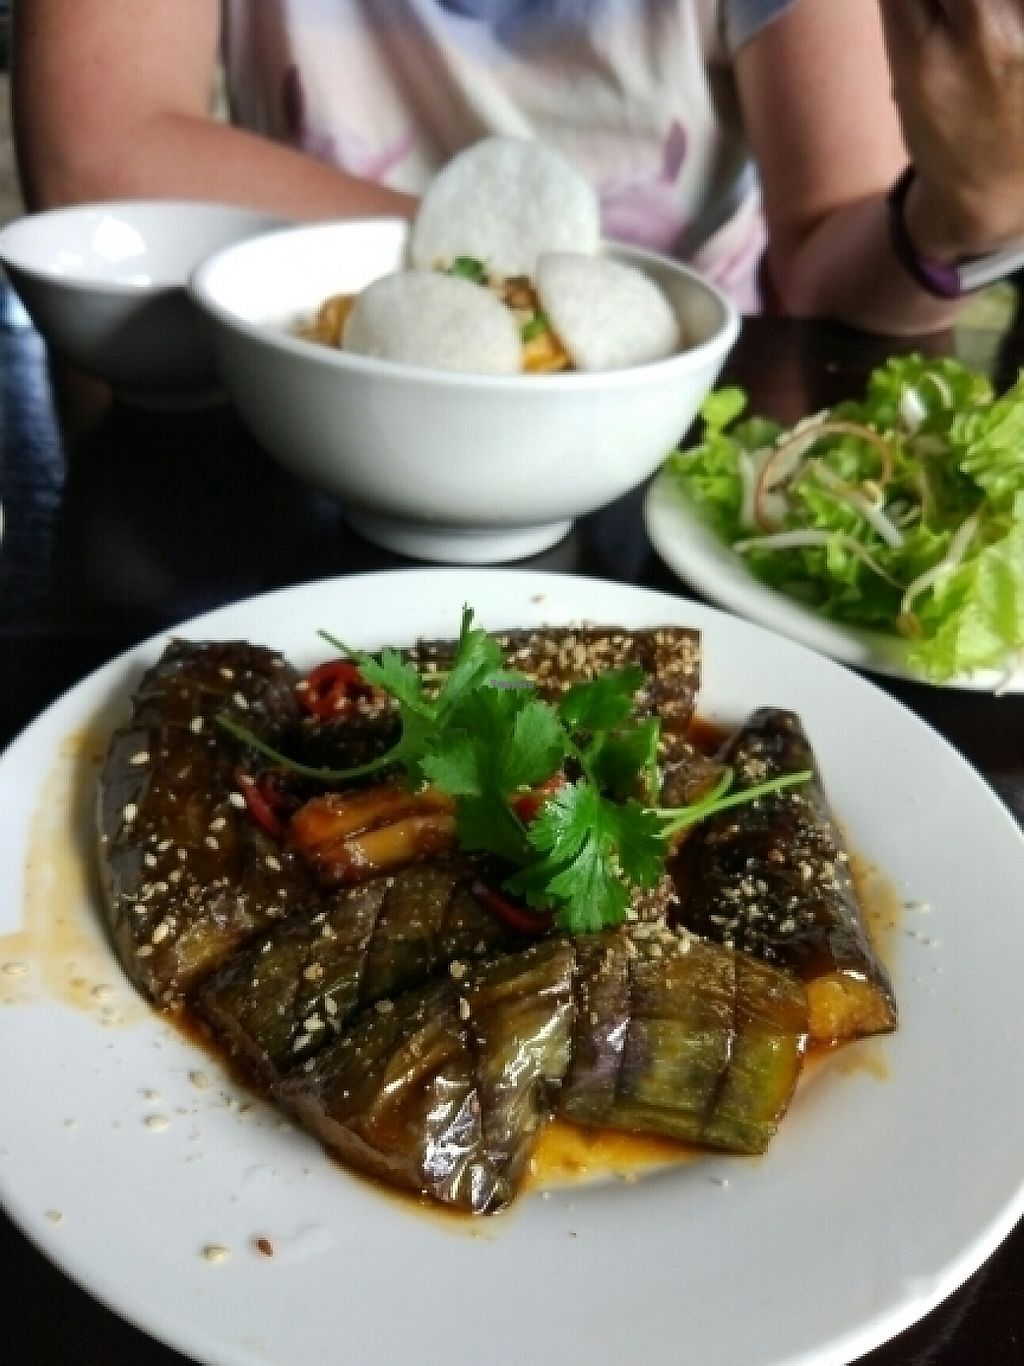 """Photo of Ngu Ha Garden Vegetarian Restaurant  by <a href=""""/members/profile/TillyMitchell"""">TillyMitchell</a> <br/>aubergine with garlic <br/> February 4, 2017  - <a href='/contact/abuse/image/82947/221960'>Report</a>"""